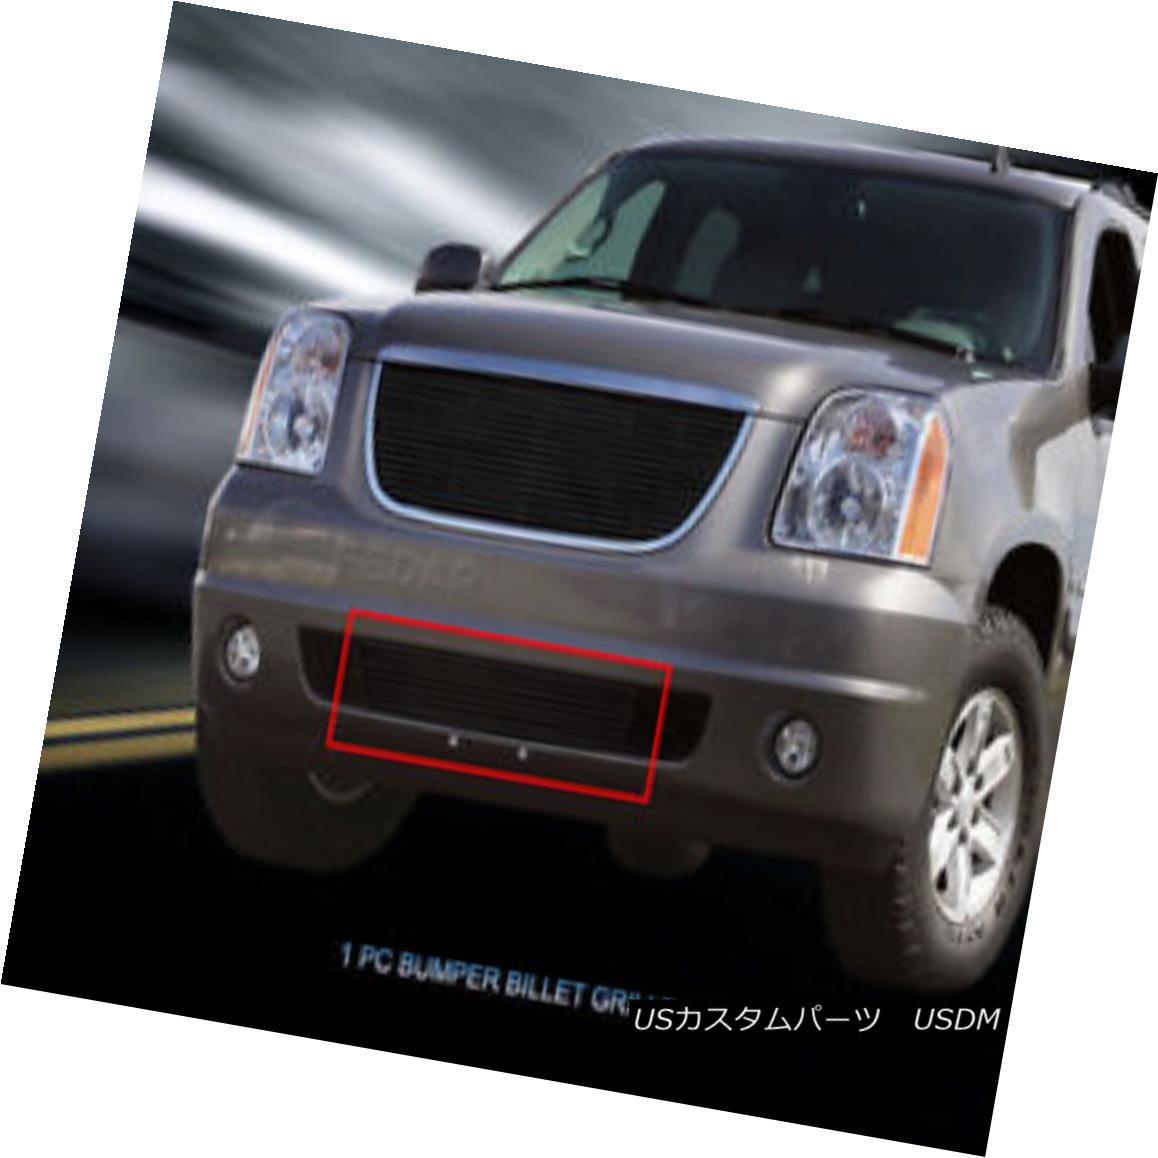 グリル For 2007-2013 GMC Yukon Black Bolt-On Billet Grille Bumper Grill Insert Fedar 2007-2013 GMC Yukon Black Bolt-OnビレットグリルバンパーグリルインサートFedar